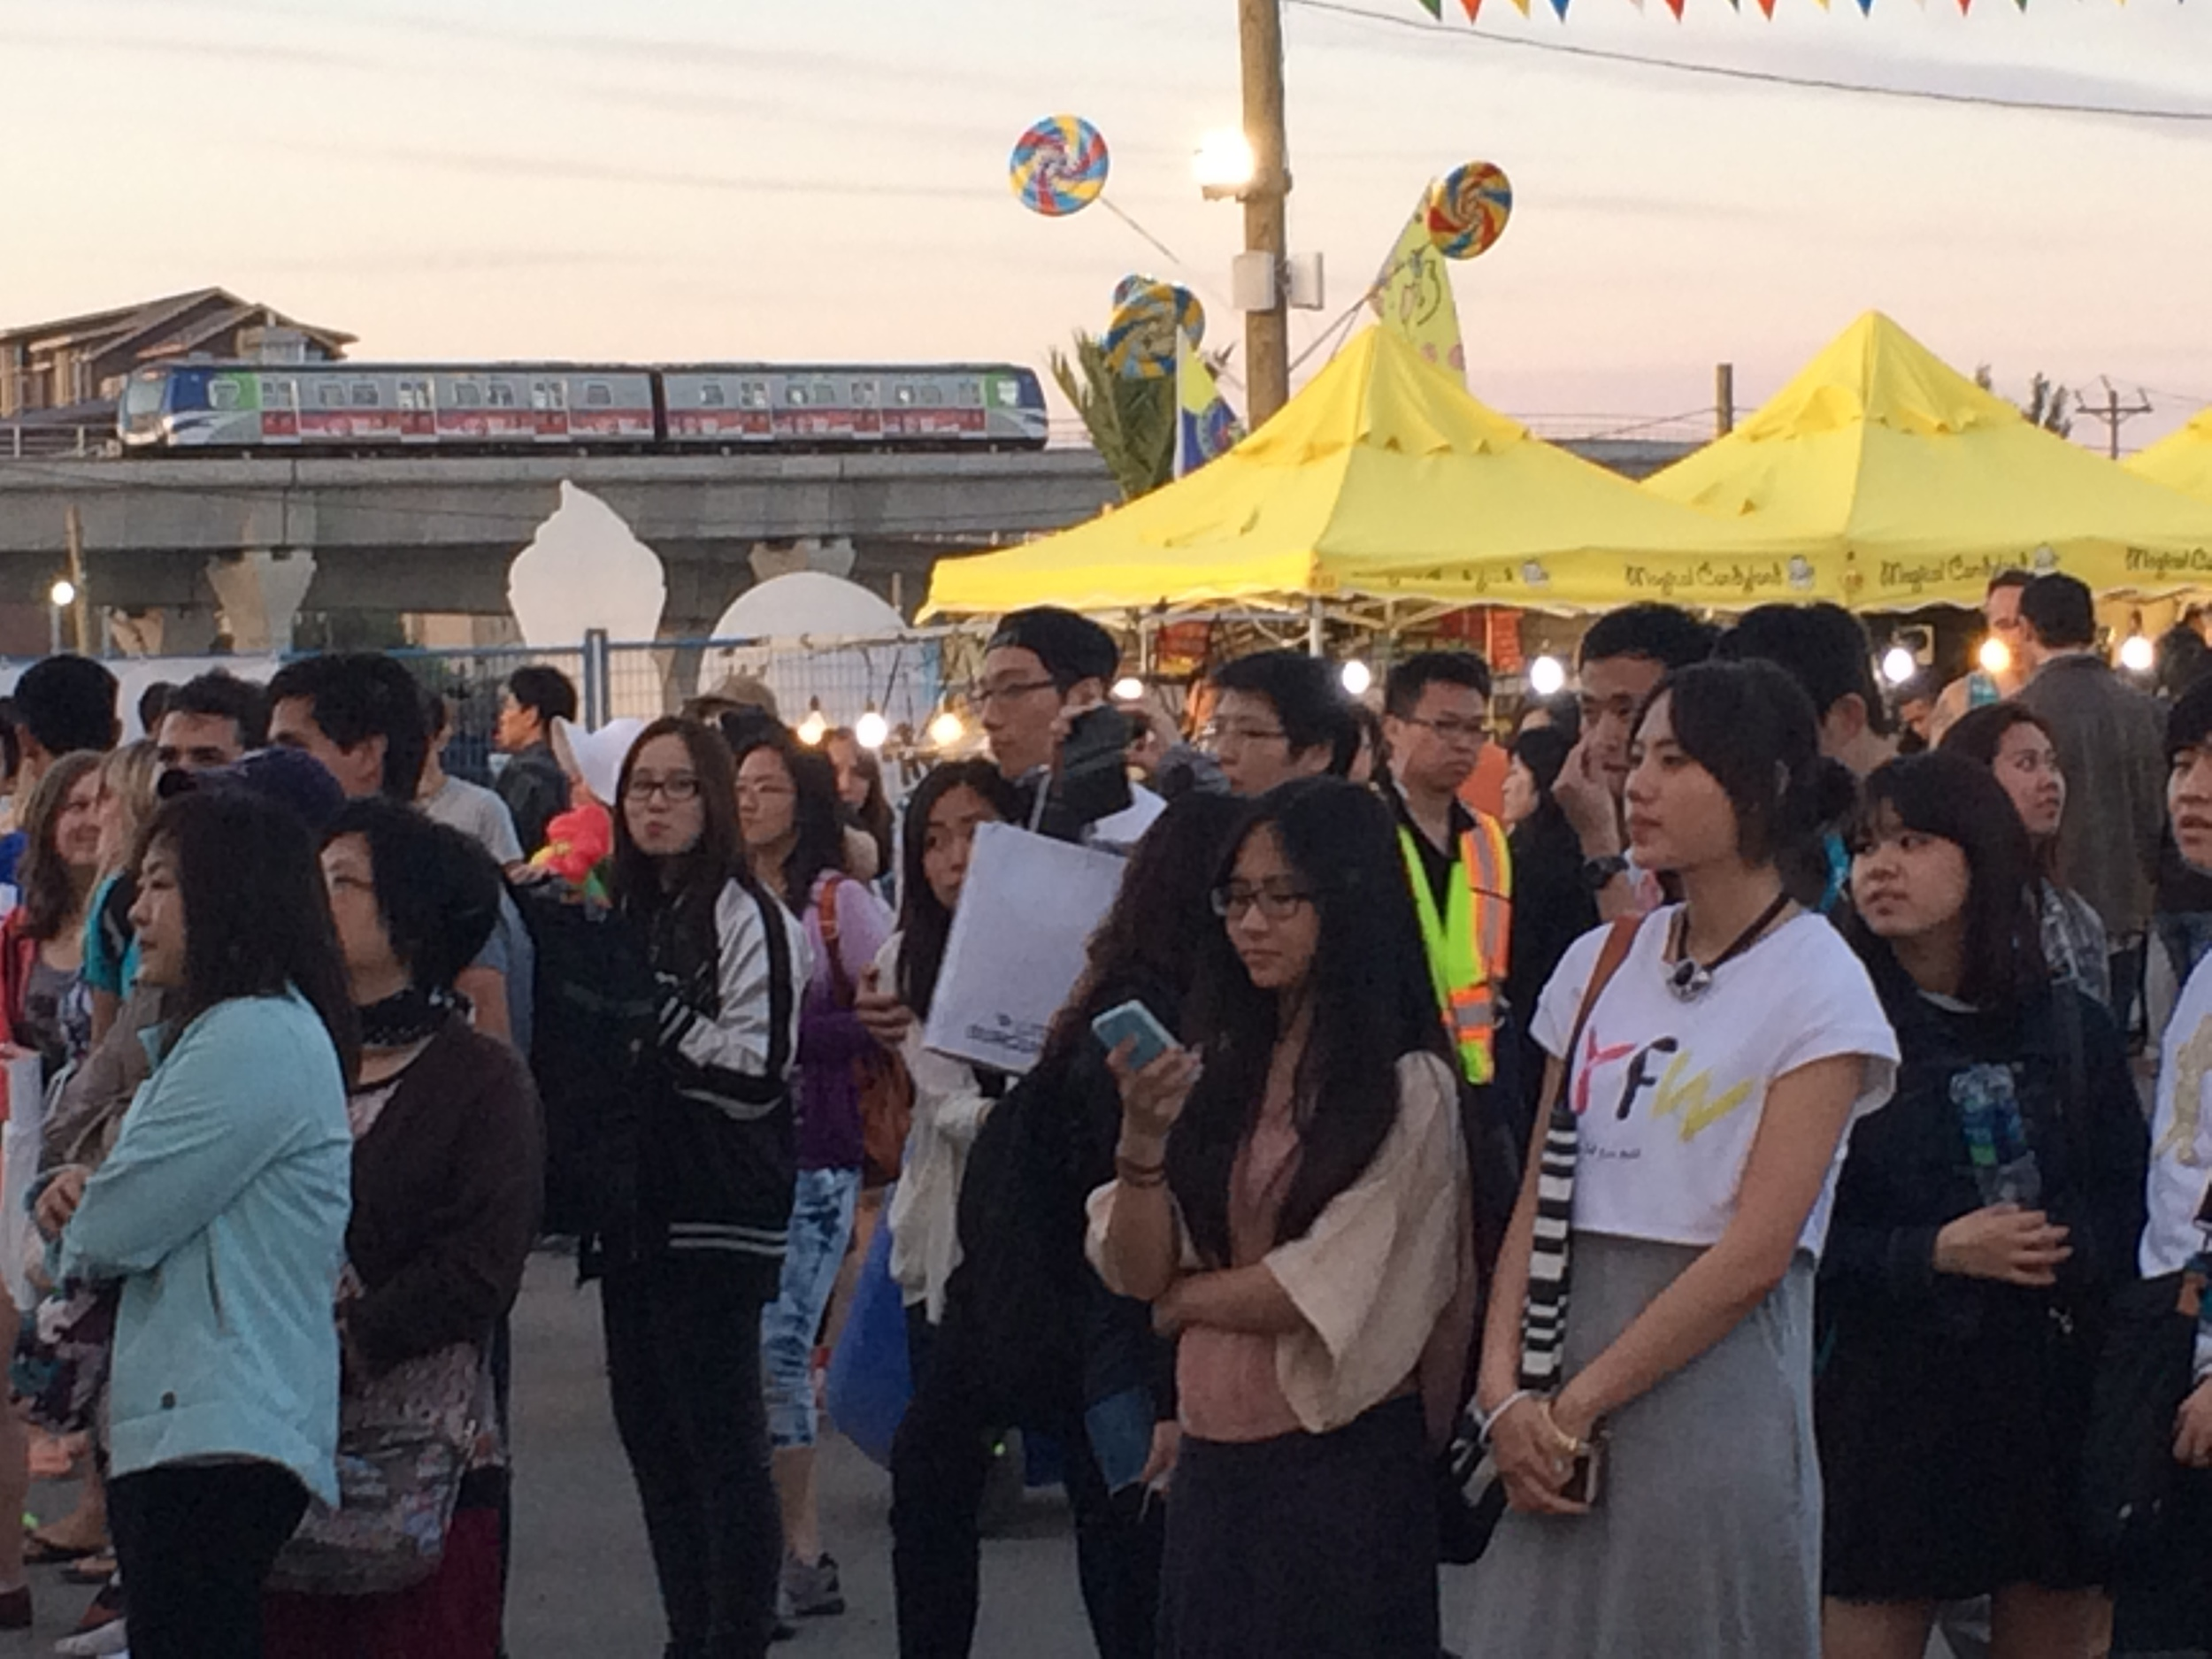 Outdoor Concert at The Richmond Night Market